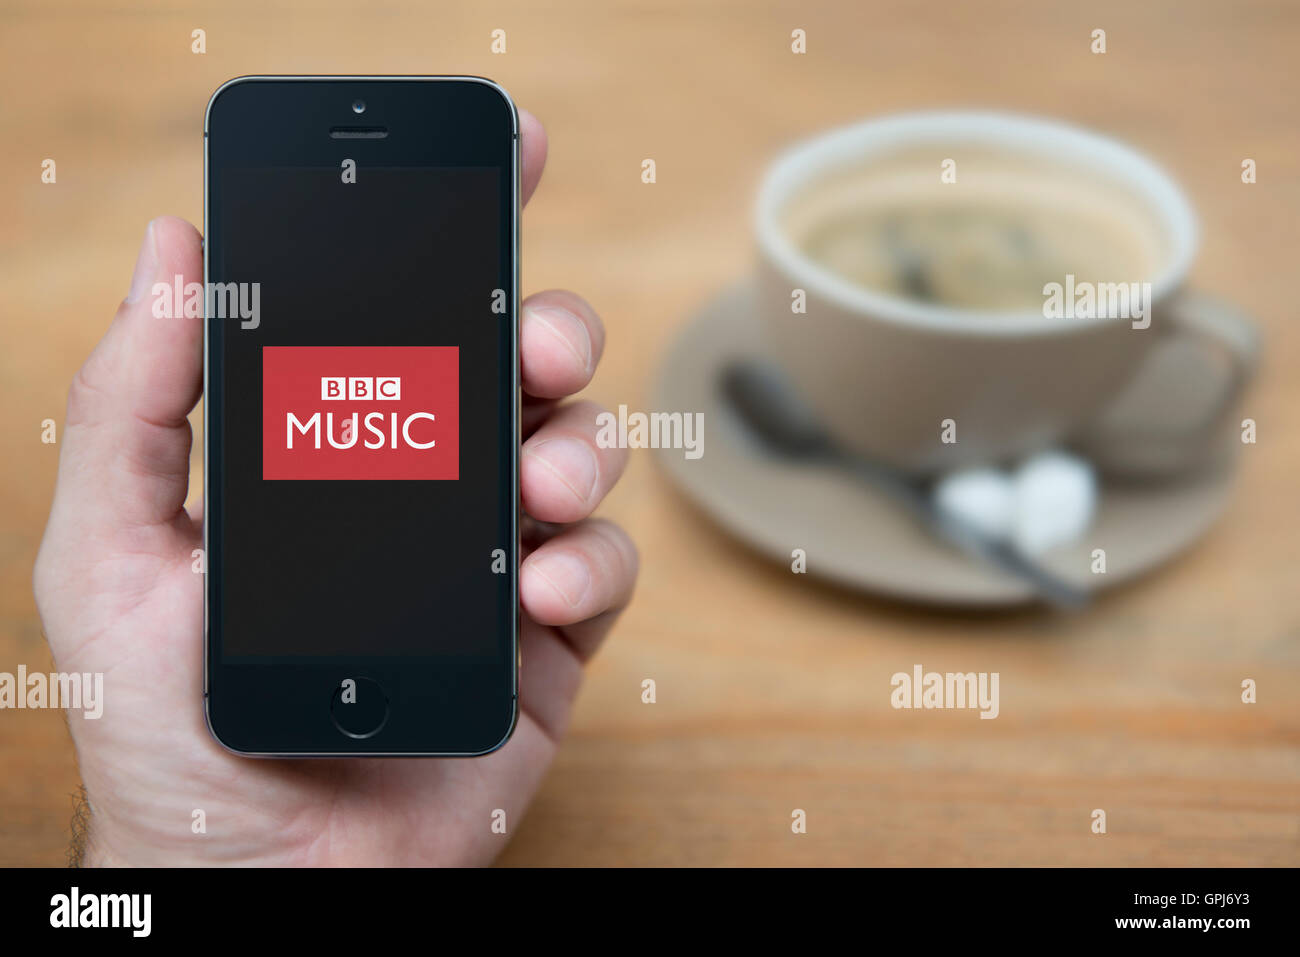 A man looks at his iPhone which displays the BBC Music logo, while sat with a cup of coffee (Editorial use only). - Stock Image